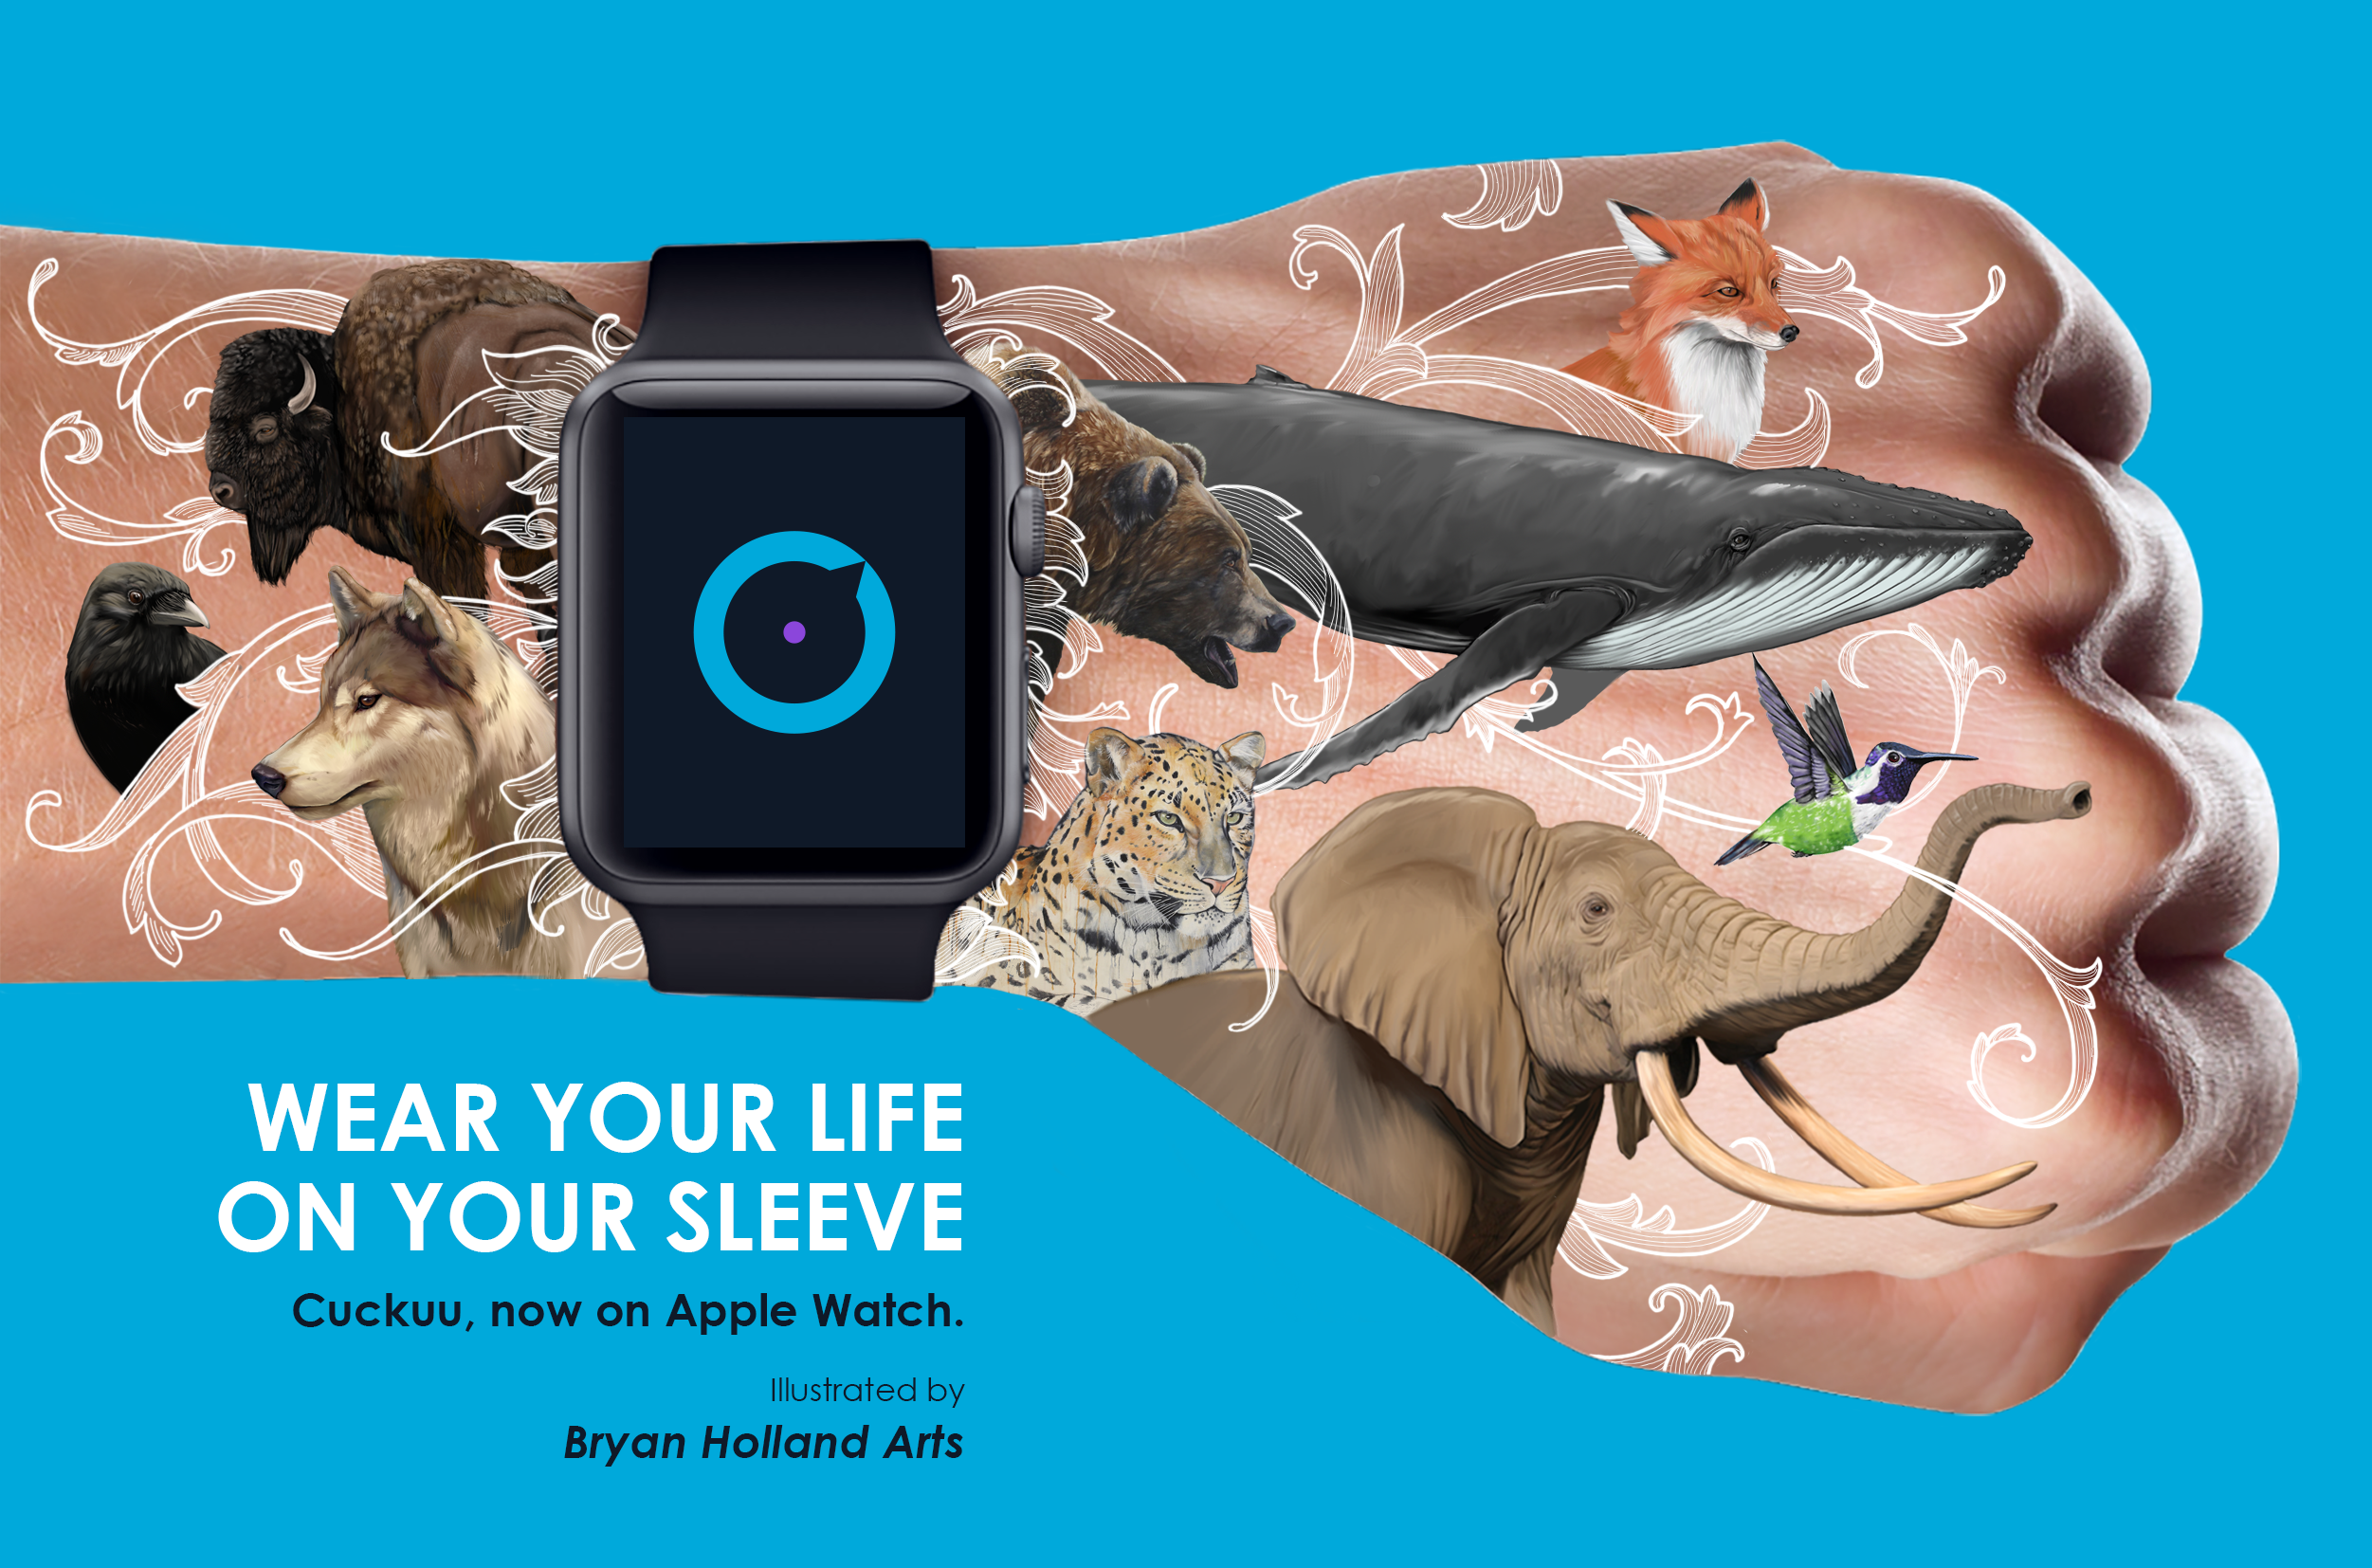 """The launch of Cuckuu for Apple Watch brought me the opportunity to challenge some great illustrators to """"Wear their lives on their sleeve."""" This week I'm pleased introduce you to the magnificent work of @bryanhollandart who produces the most amazing, original animal illustrations. Thank you for accepting the challenge Bryan! Take a look. I would love your feedback :) Keep a look out for more, cool guest artist buddies I'll be sharing with you very soon.    www.cuckuu.com"""